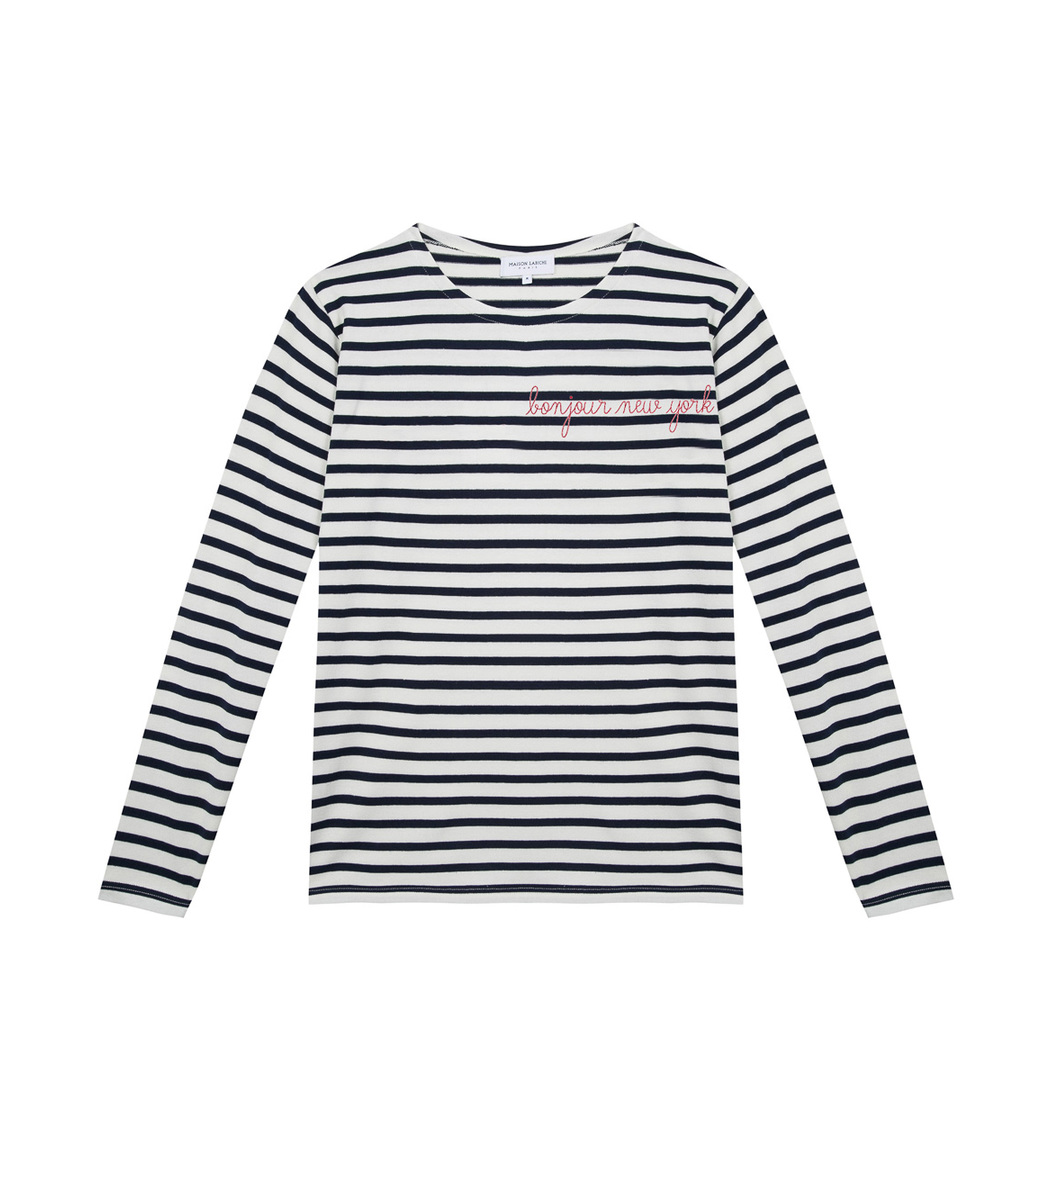 Maison Labiche White/Blue Bonjour New York Stripped Long Sleeve Top